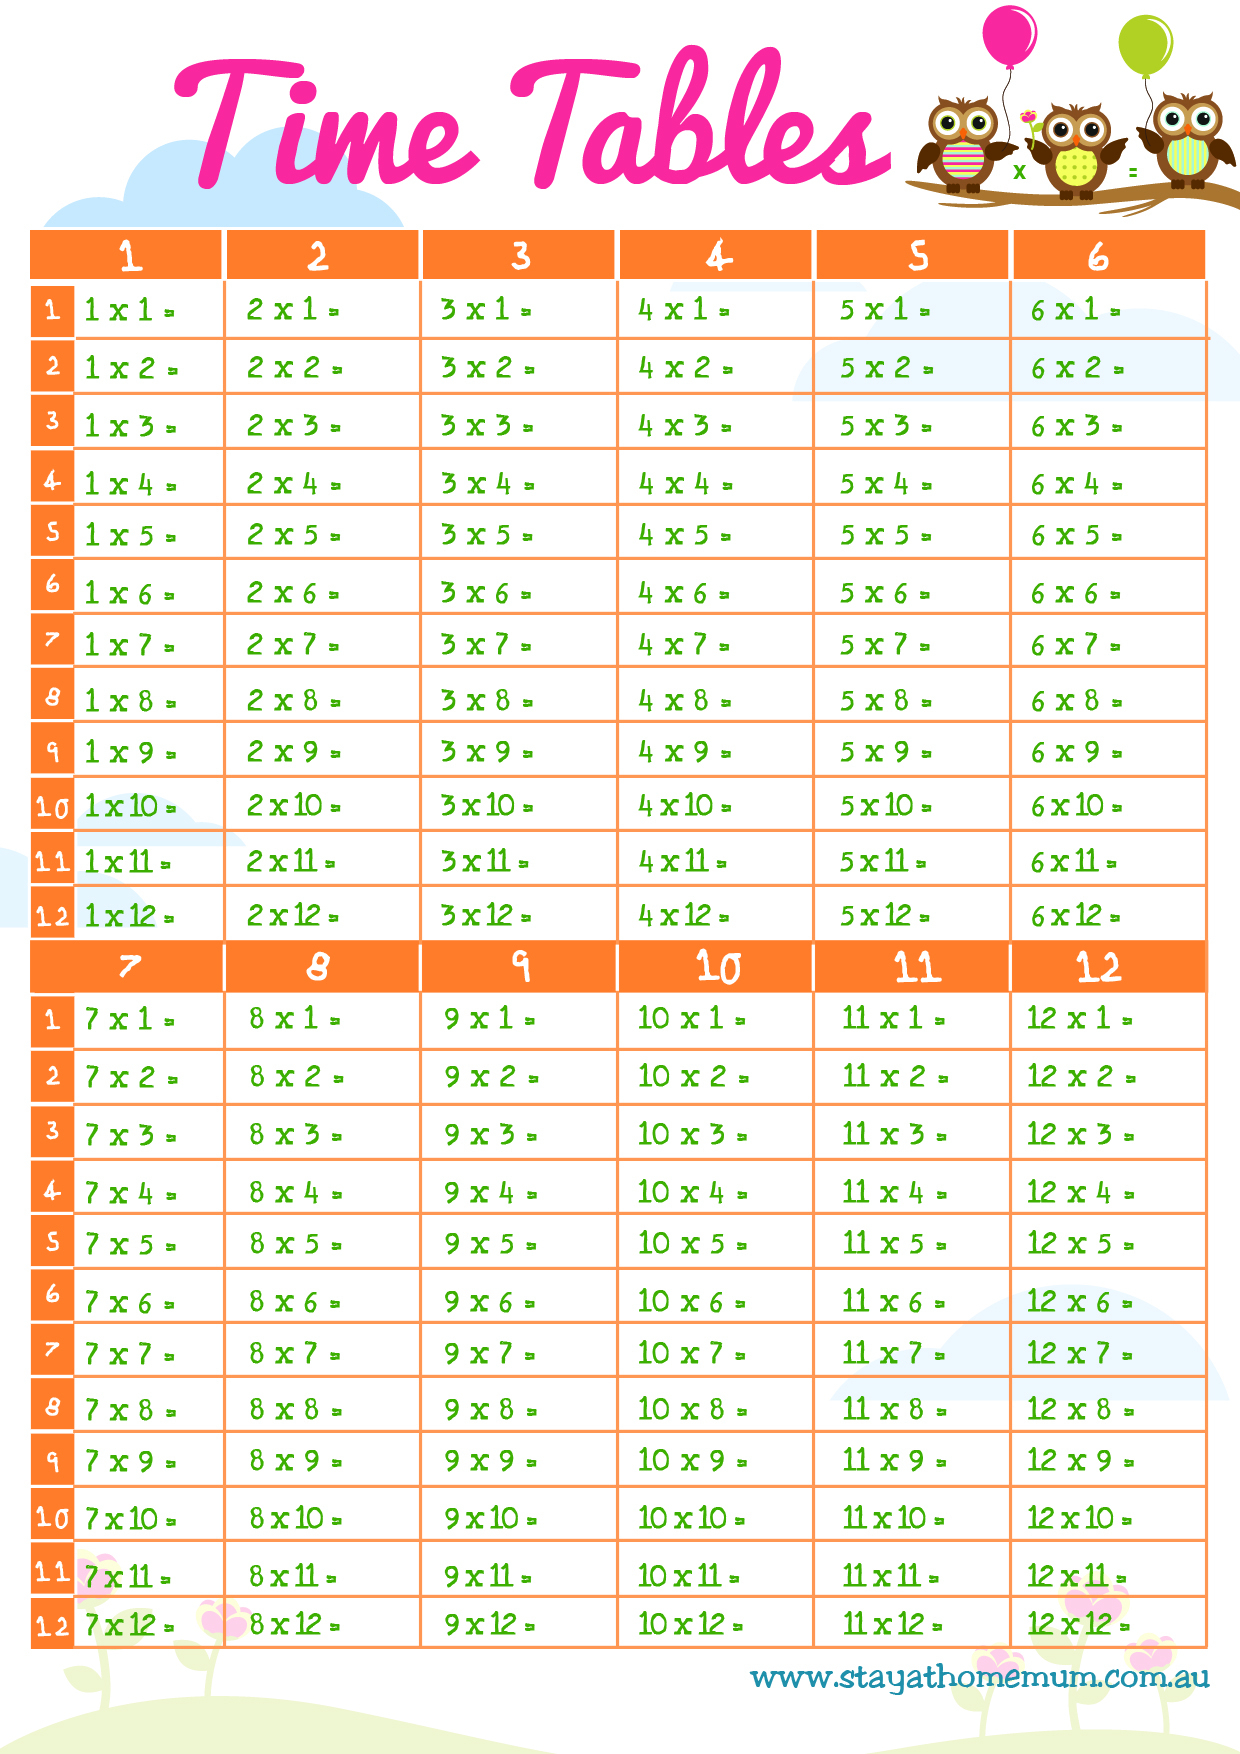 Times Tables - Free Printable - Stay At Home Mum pertaining to Printable Multiplication Tables No Answers